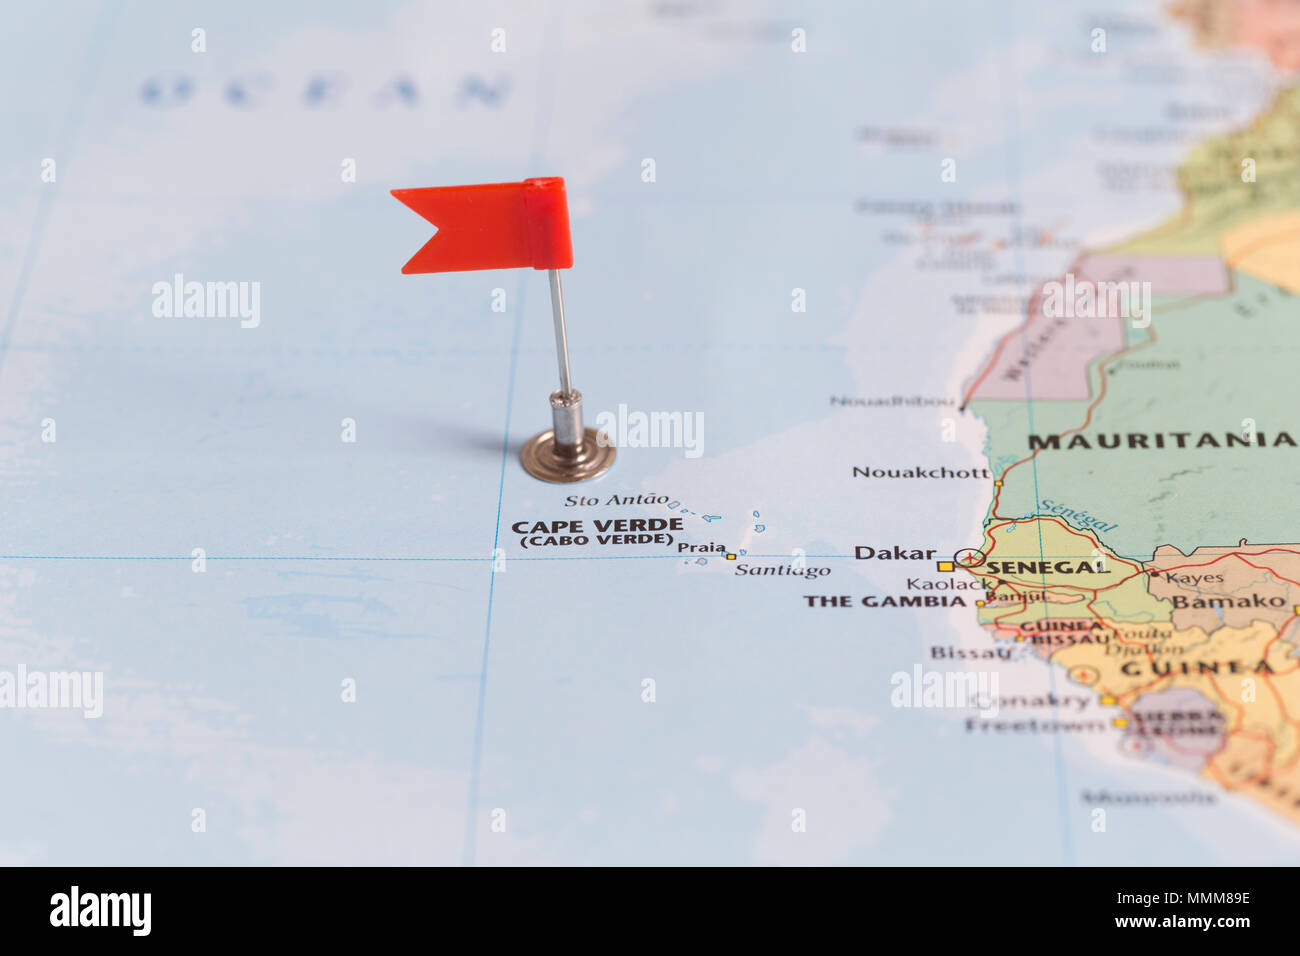 Where Is Cape Verde Located On The World Map.Small Red Flag Marking The Cape Verde Islands Of The West Coast Of